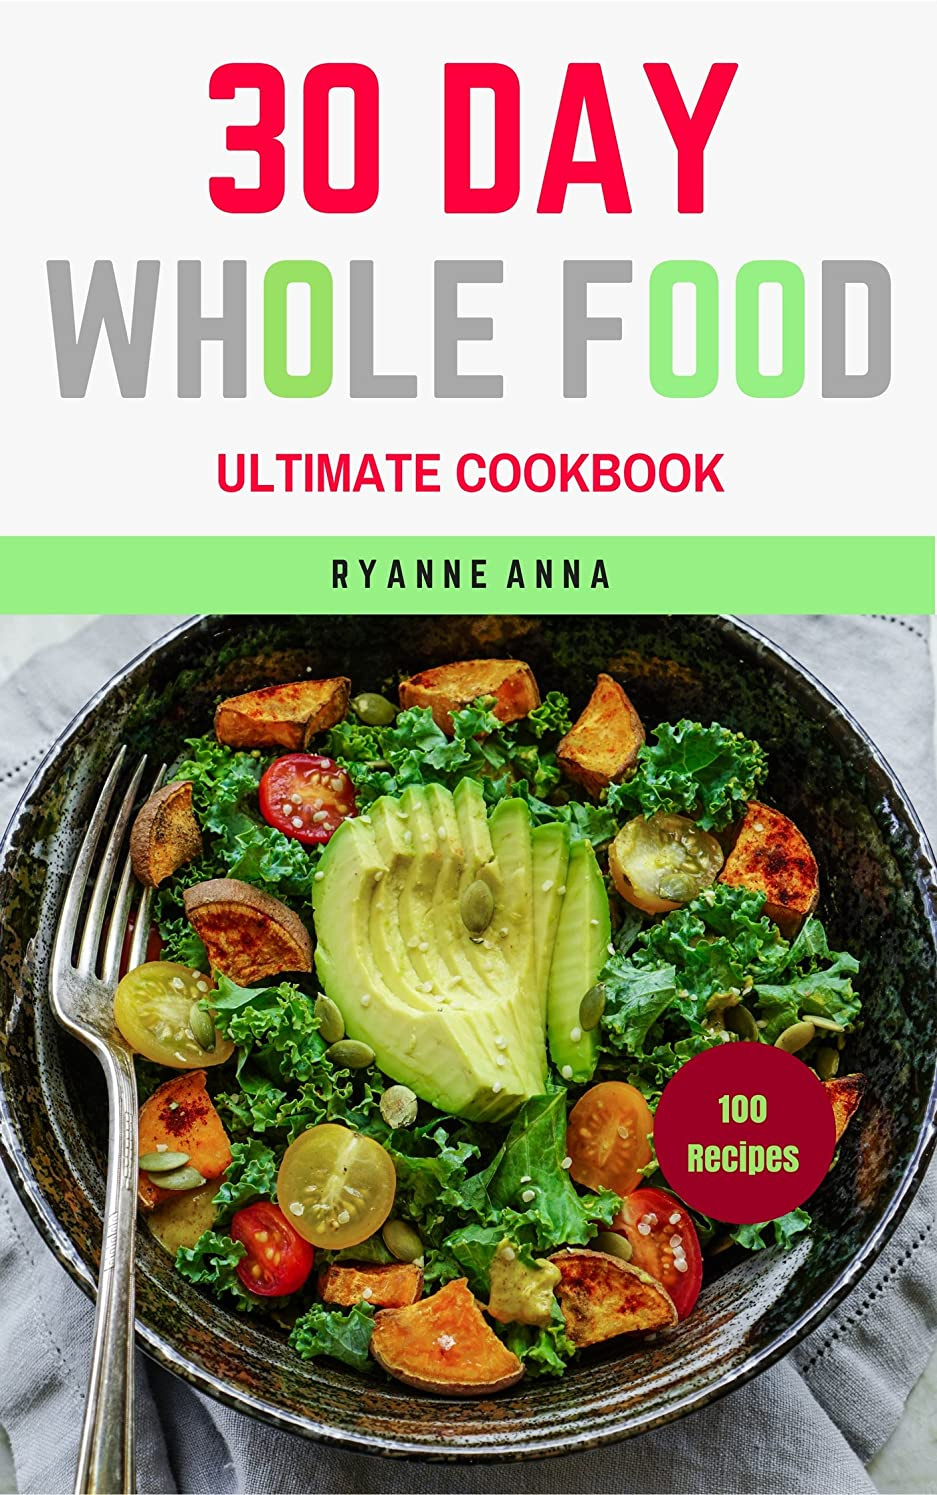 Whole Food: The 30 day Whole Food Ultimate Cookbook 100recipes (Whole Food Diet, Whole Food Cookbook,Whole Food Recipes, Clean Eating, Paleo, Ketogenic) (English Edition)